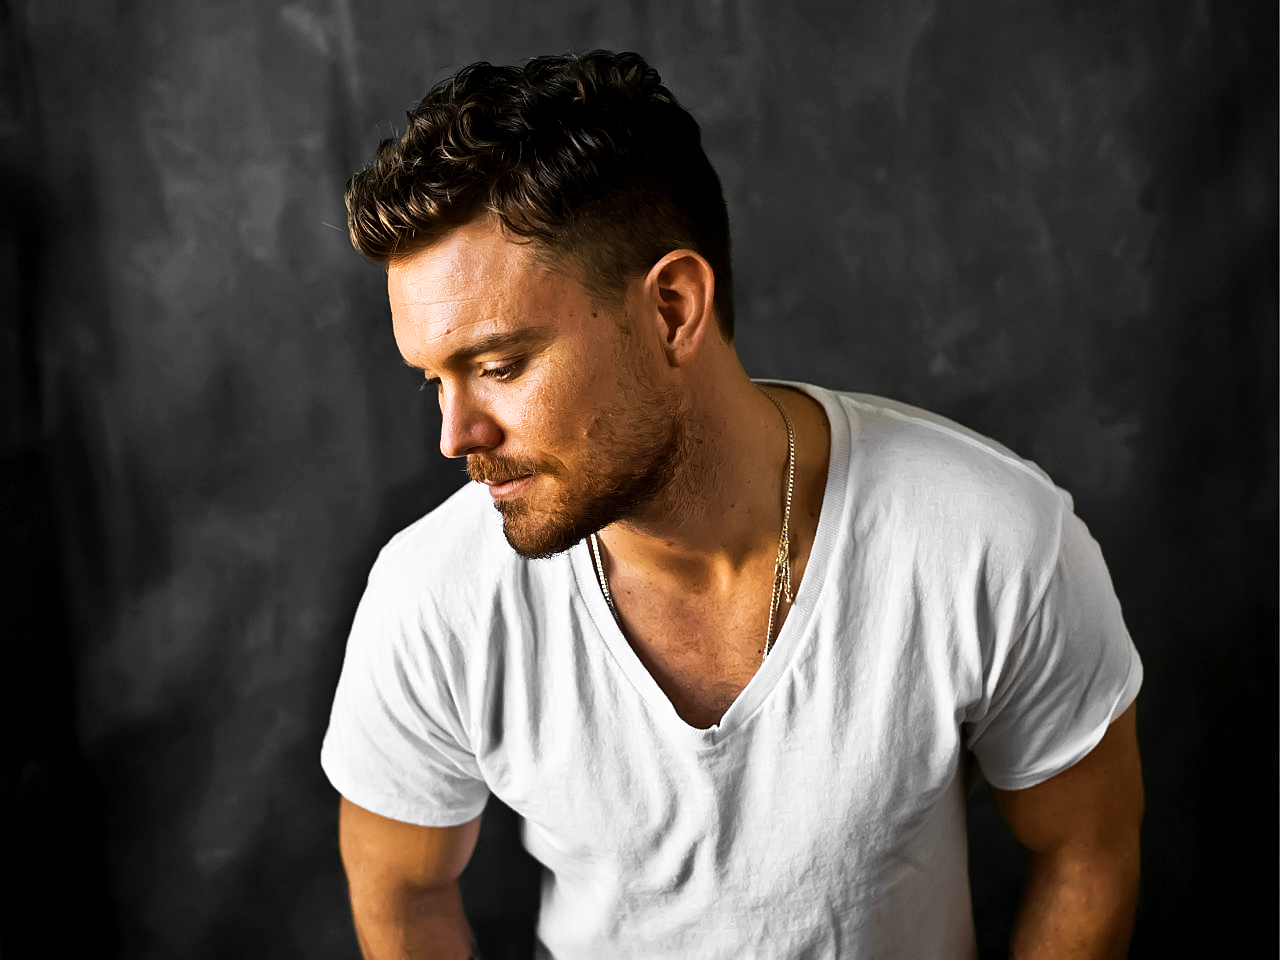 Clayne Crawford from the